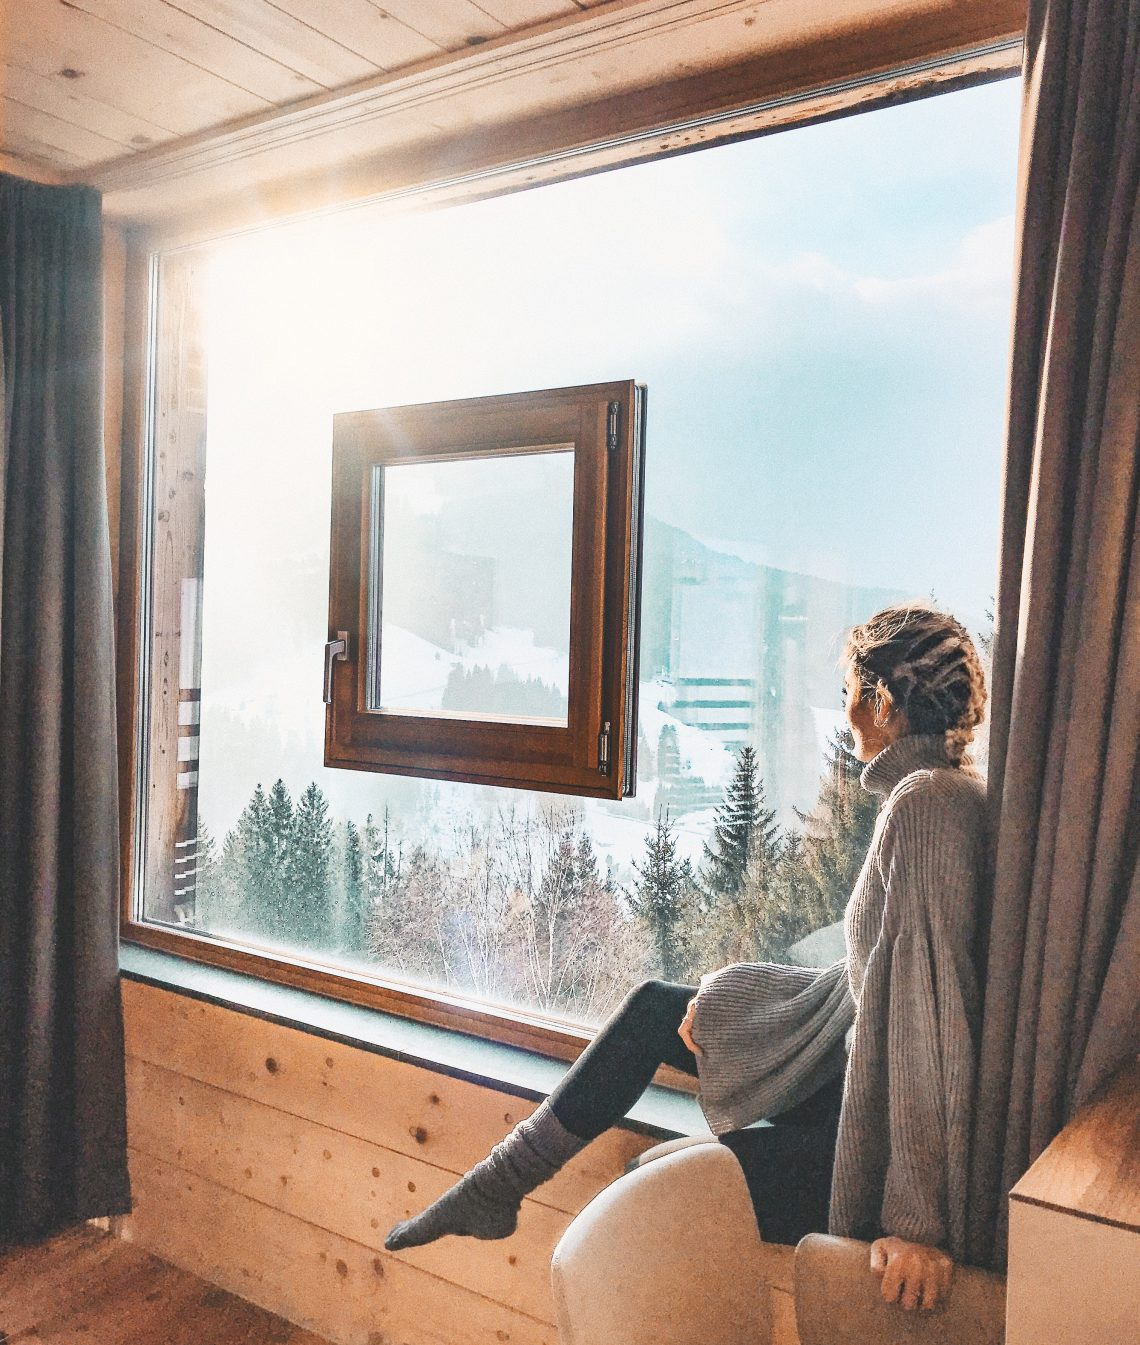 The epitome of Alpine Luxury | My review of Forsthofalm Holzhotel, Leogang